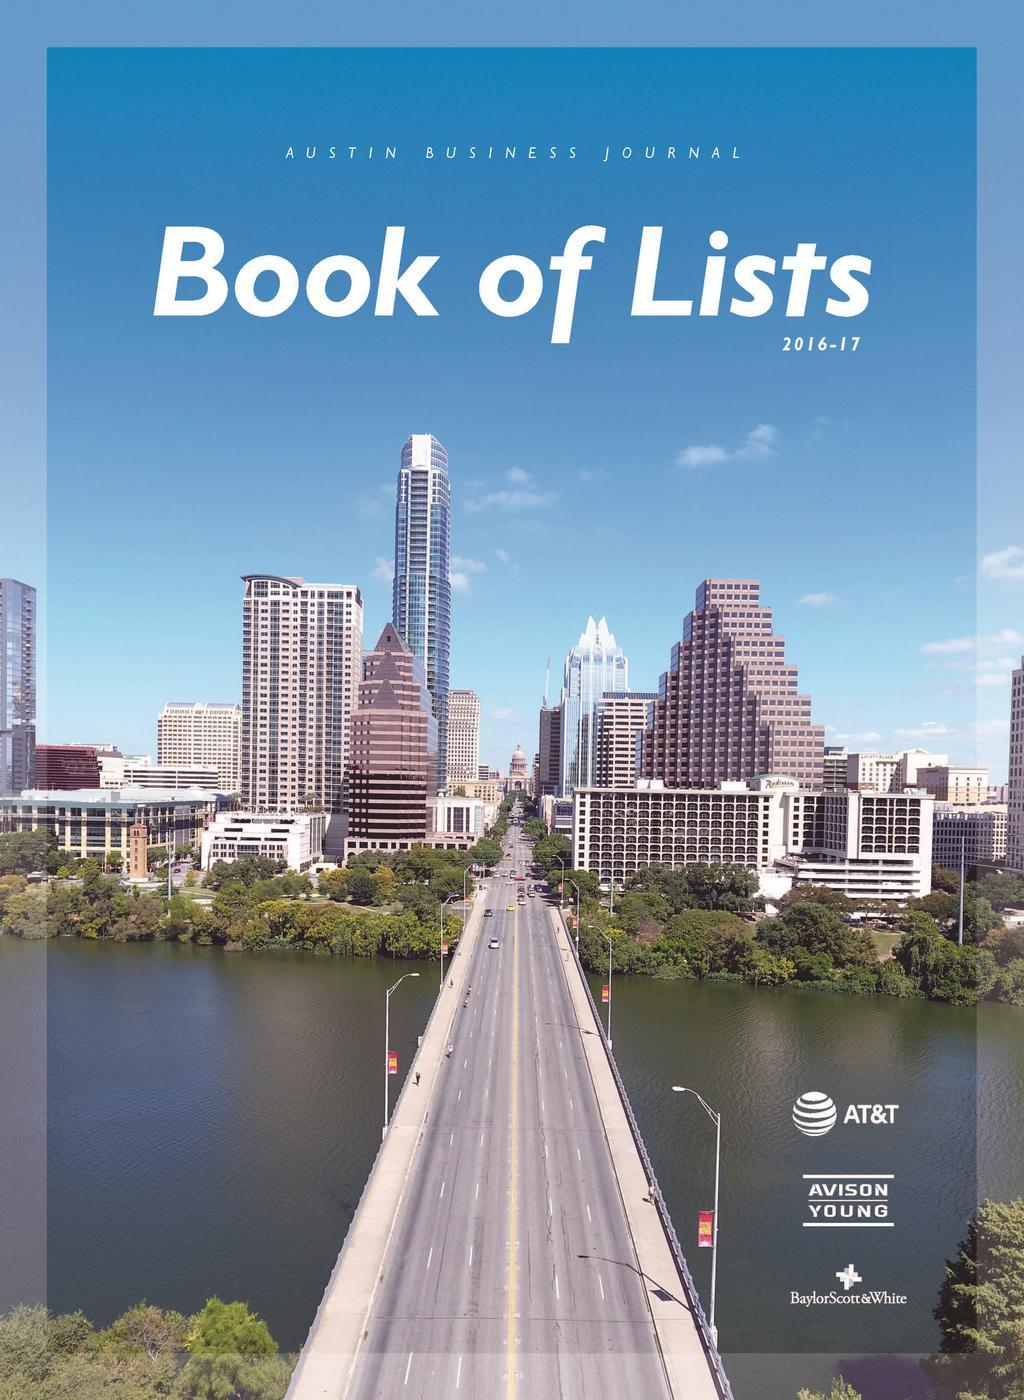 book of lists austin business journal